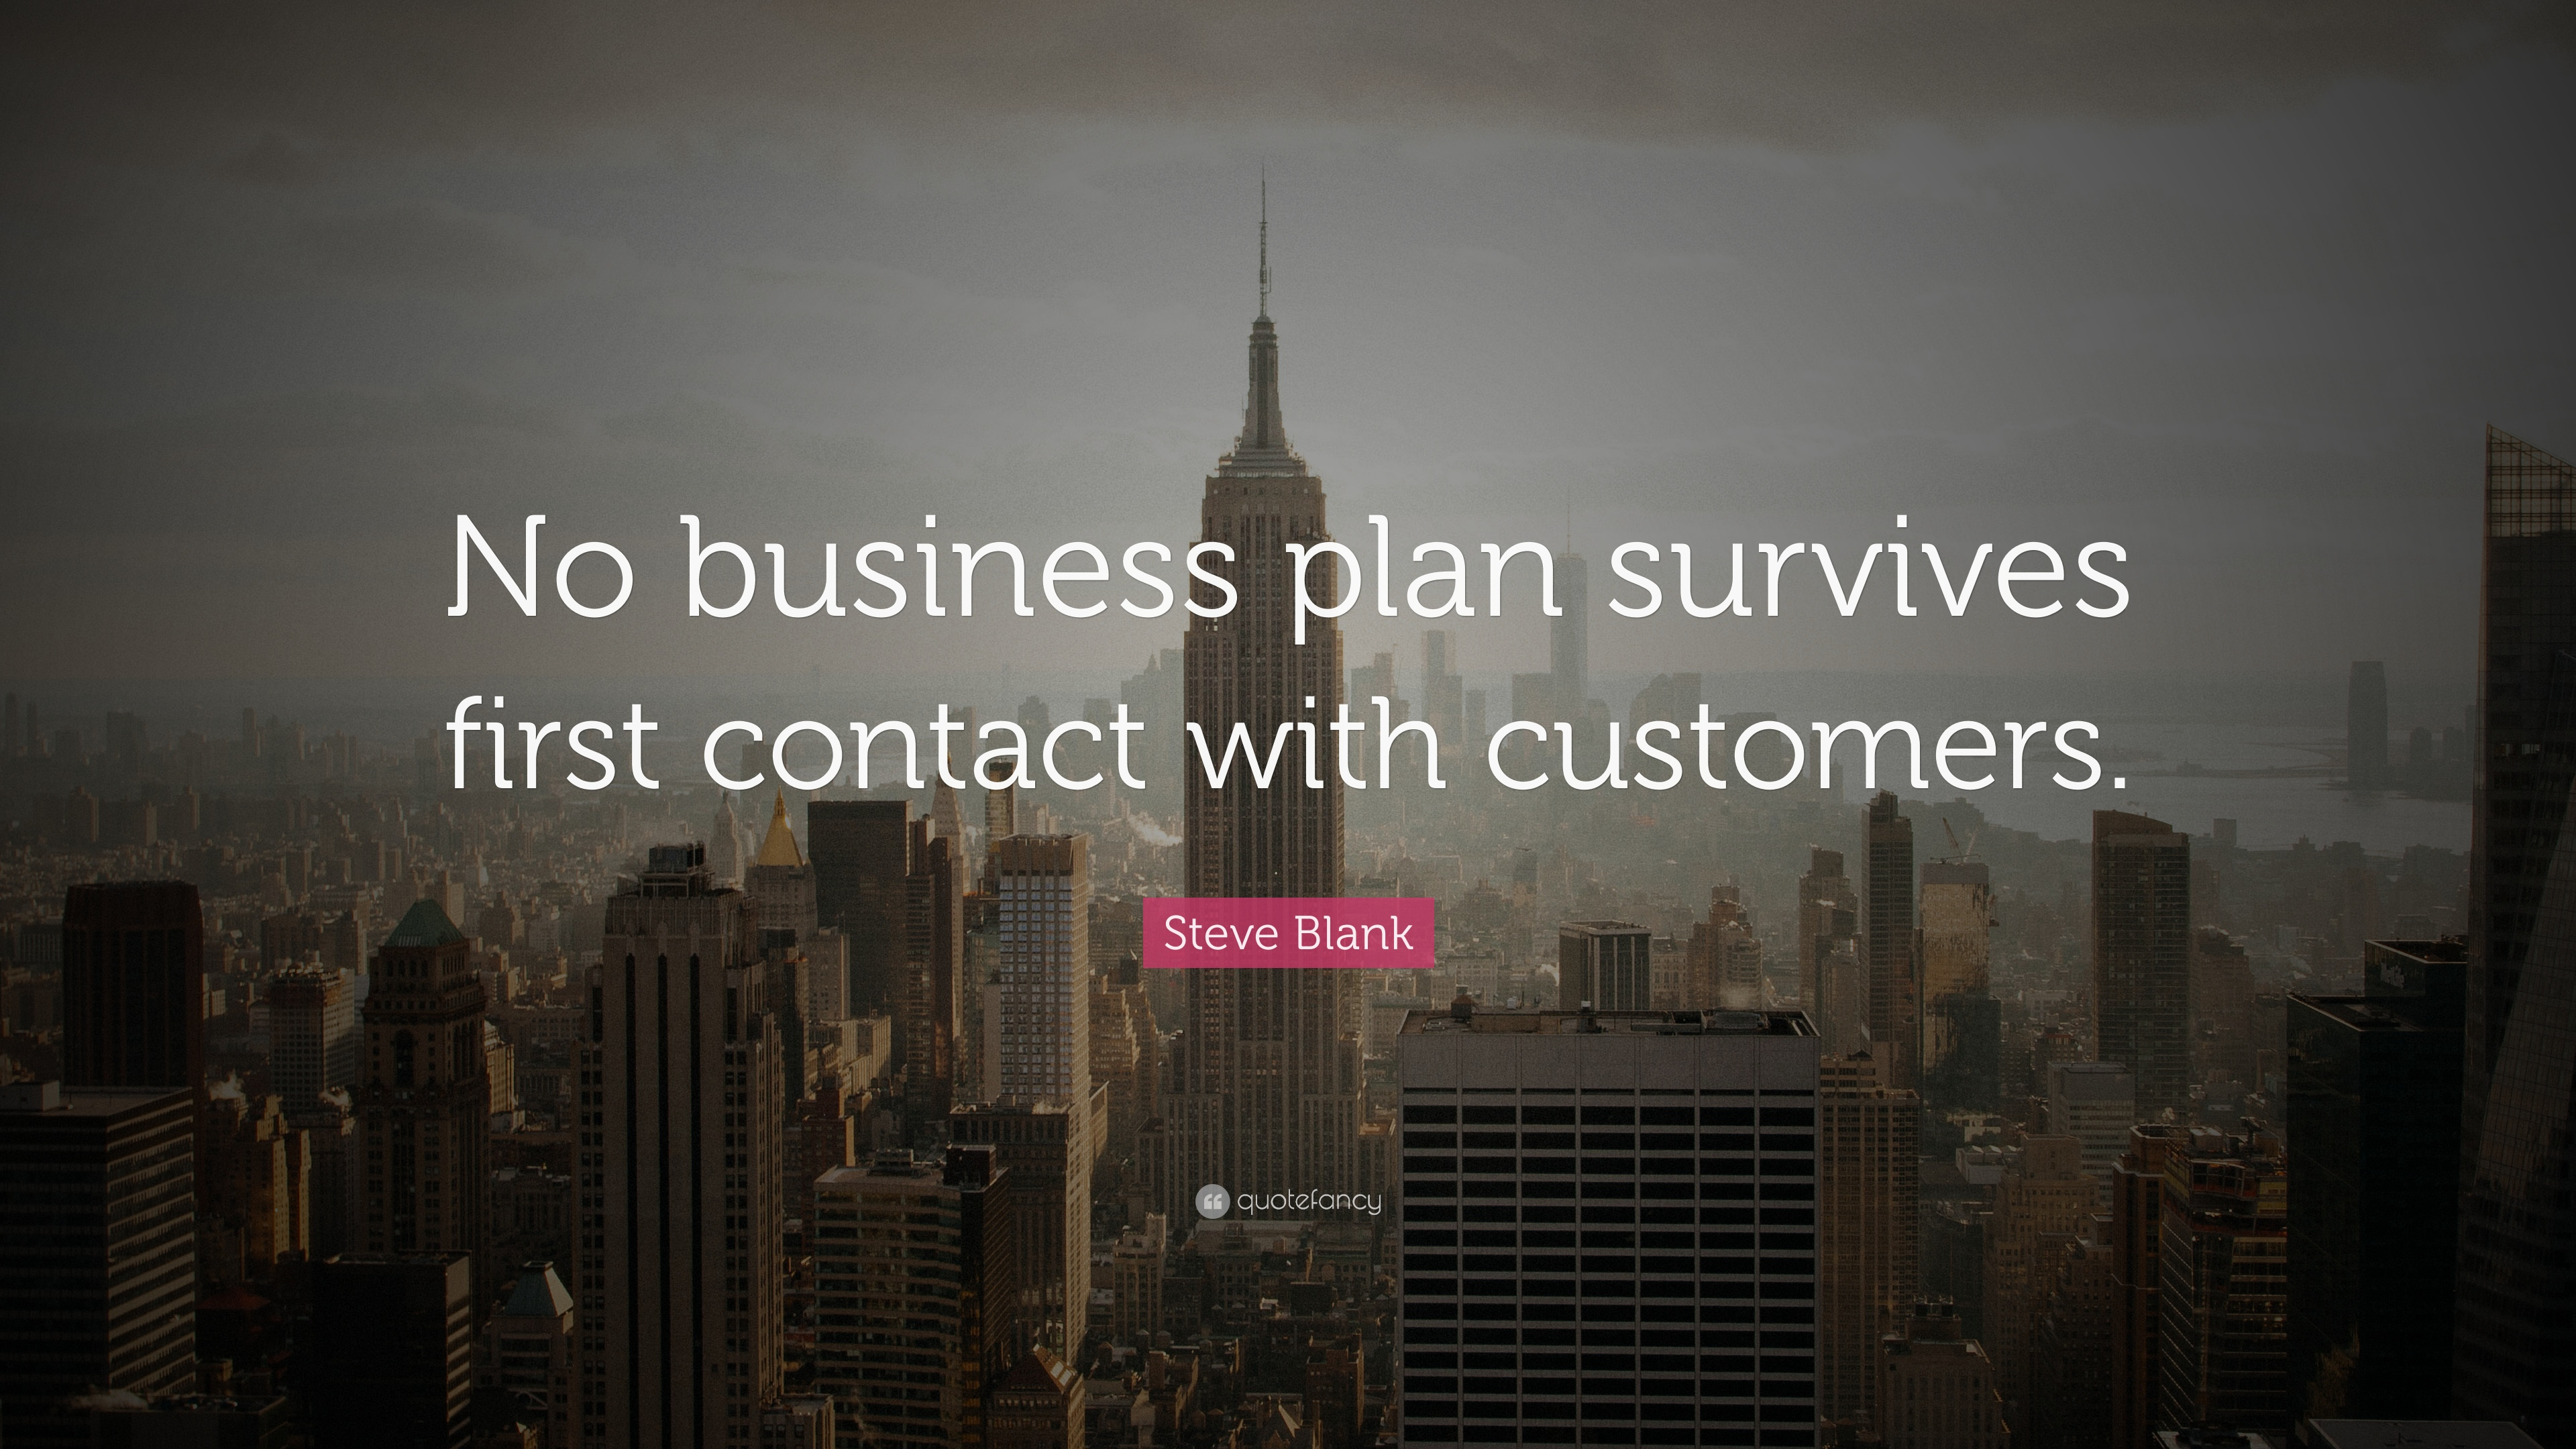 No business plan survives first contact with customers